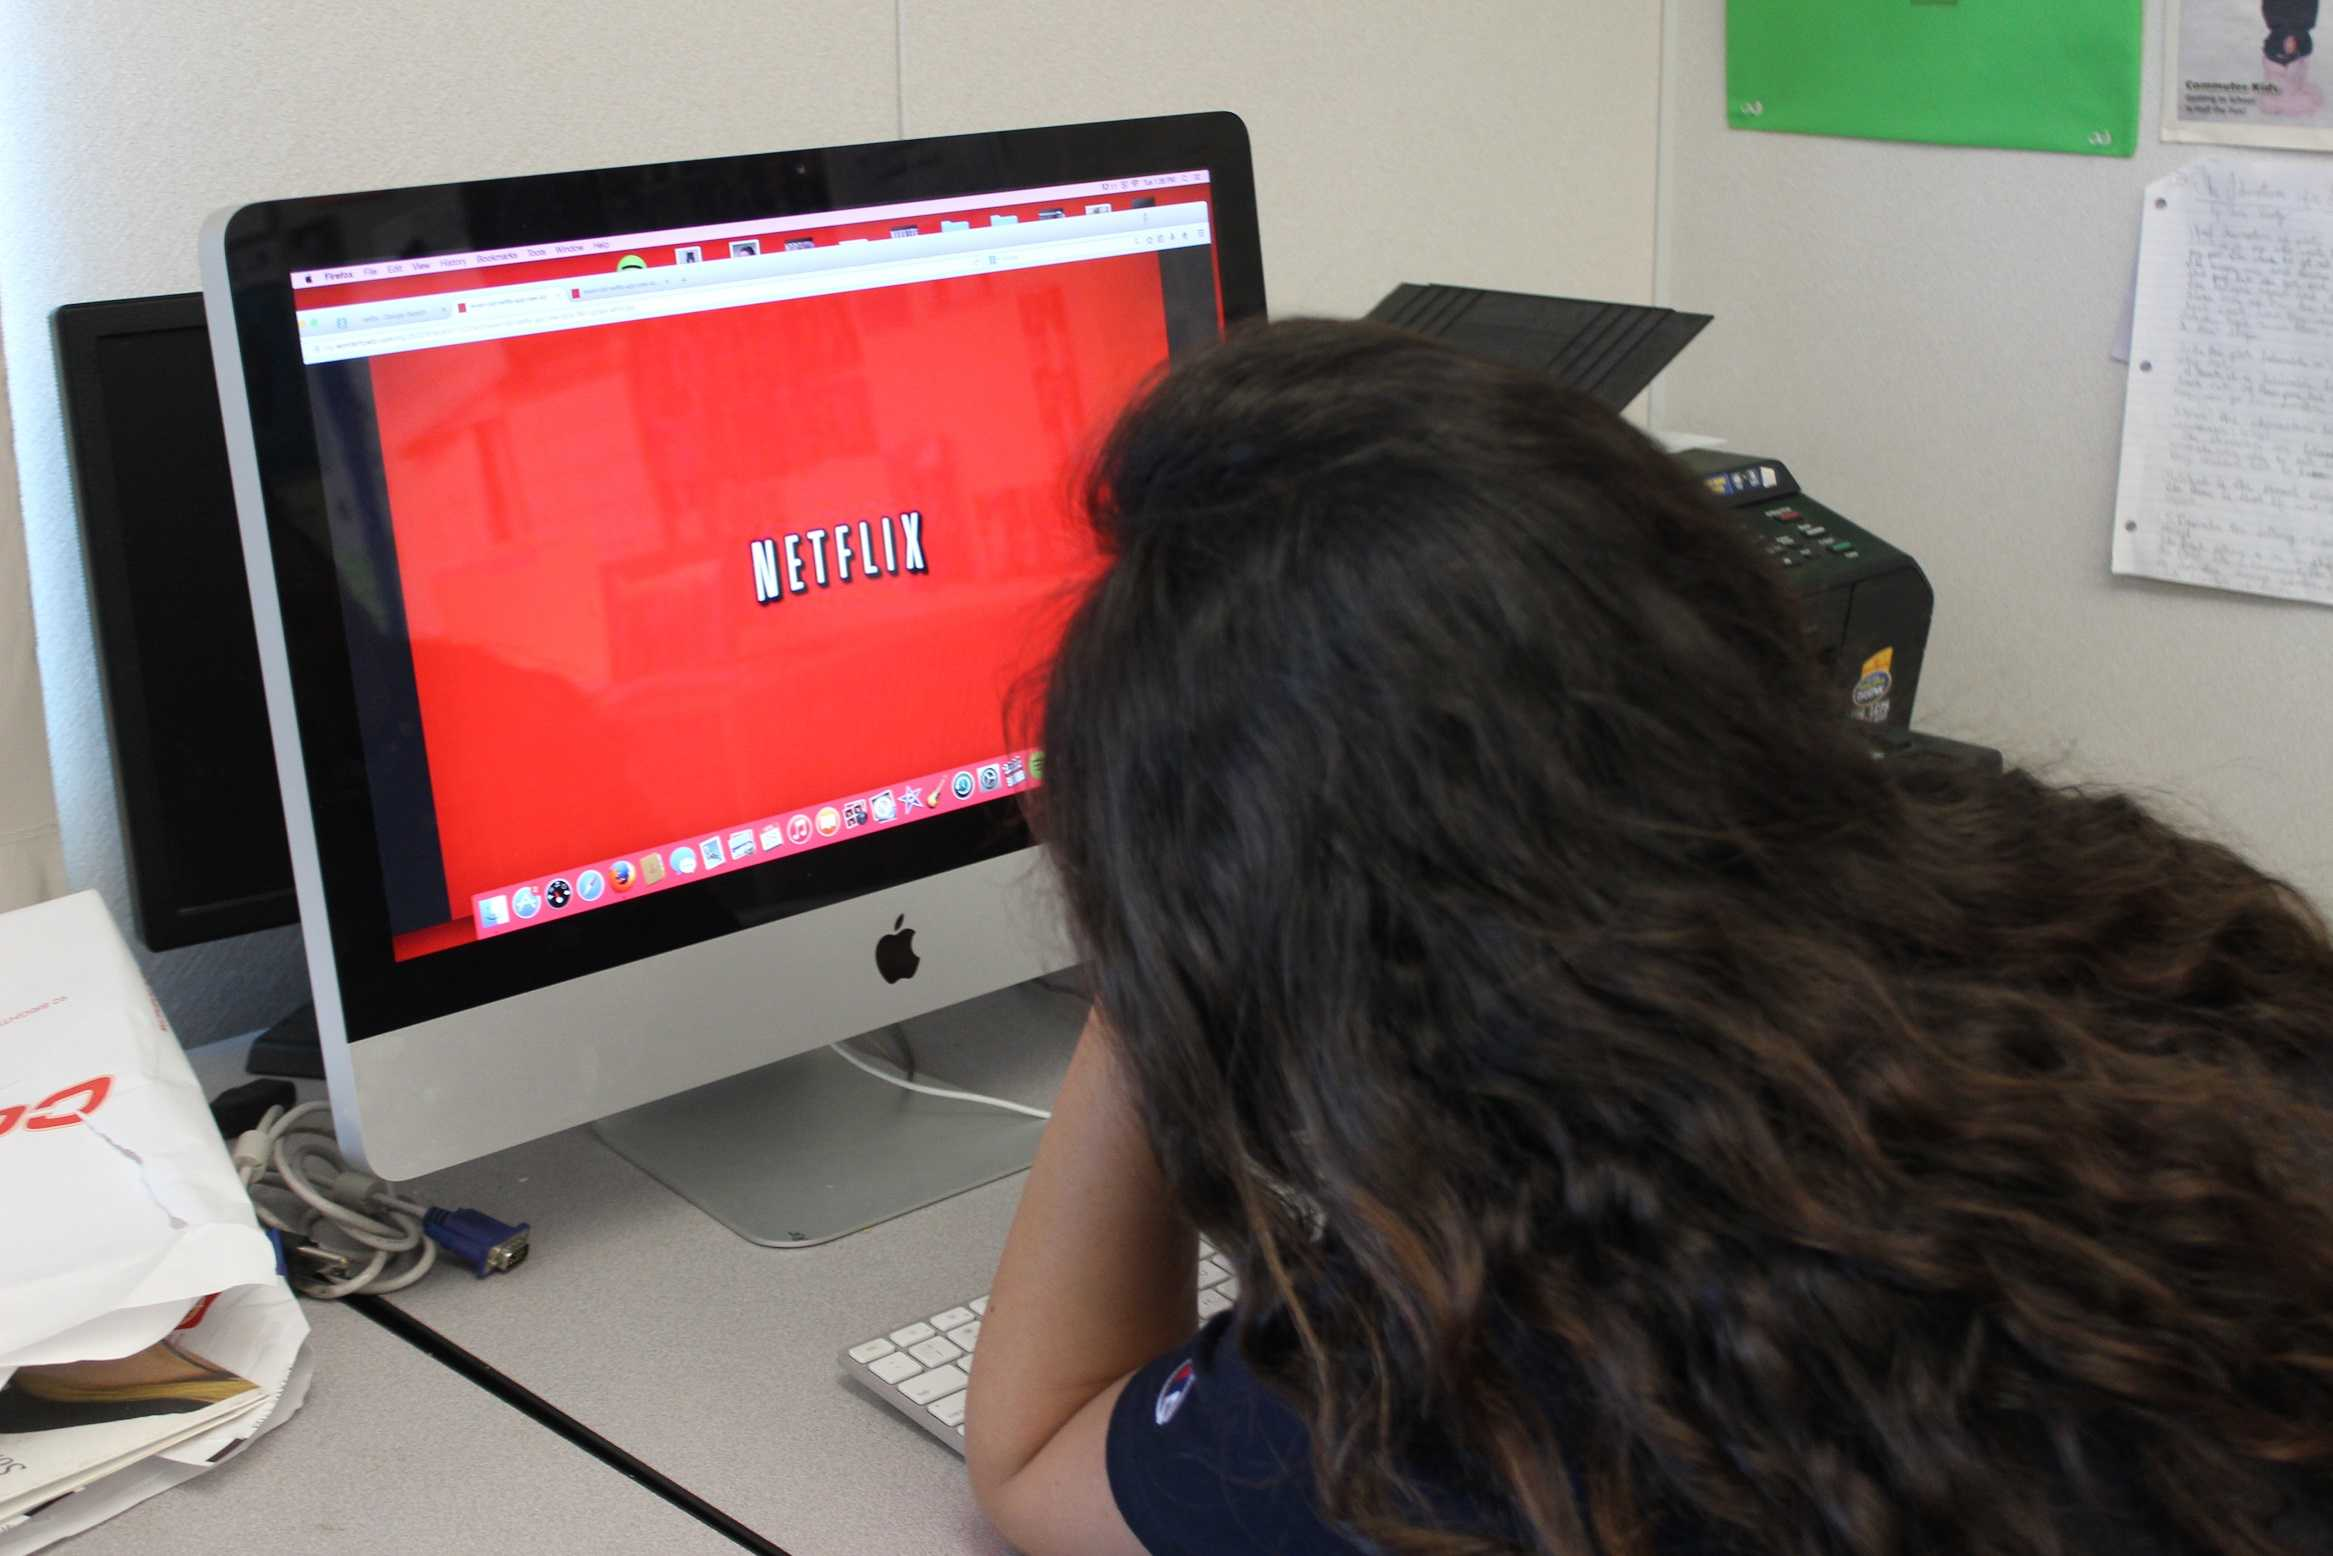 Netflix has won over the hearts of many students as a form of relaxation.